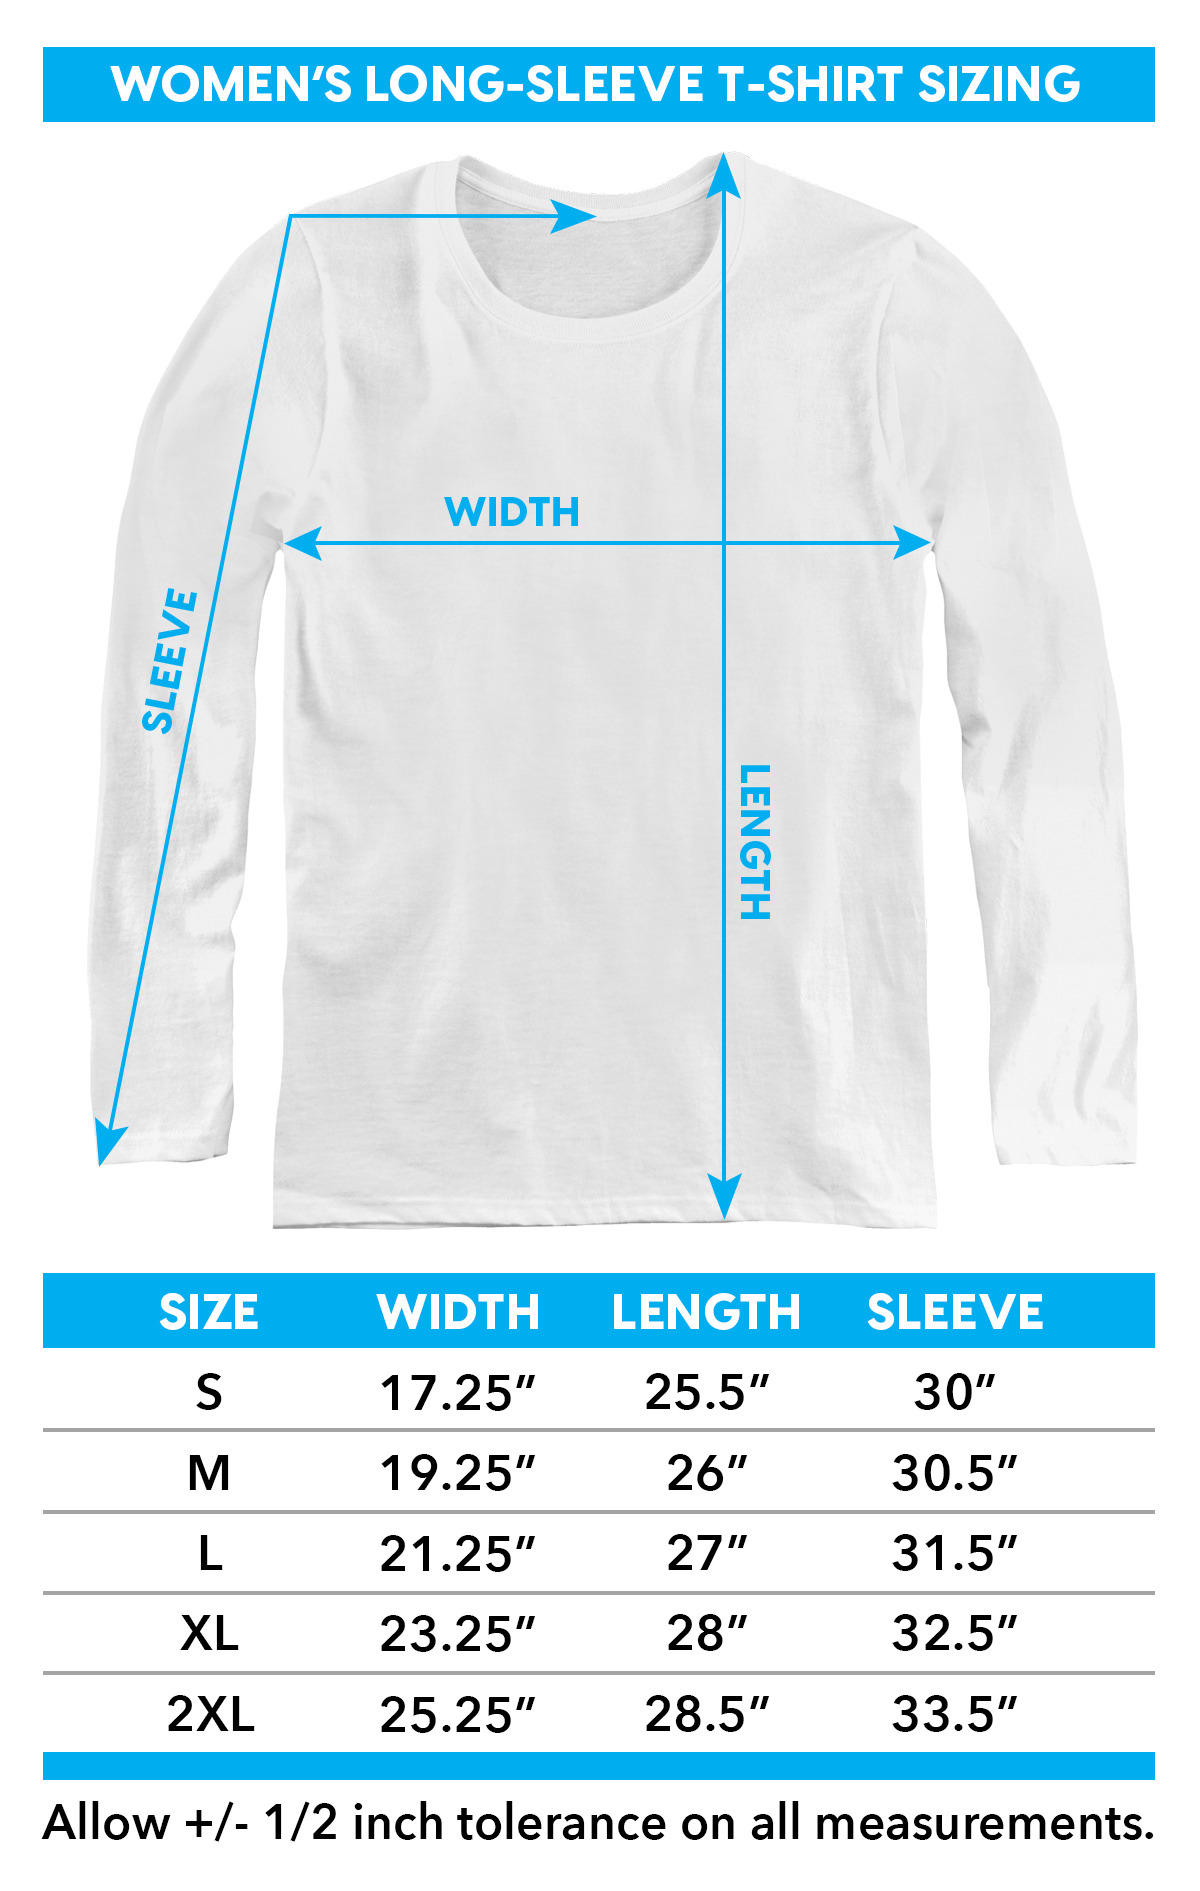 Size Chart for John Lennon Women's Long Sleeve T-Shirt - Imagine  TRV-LEN105-WL